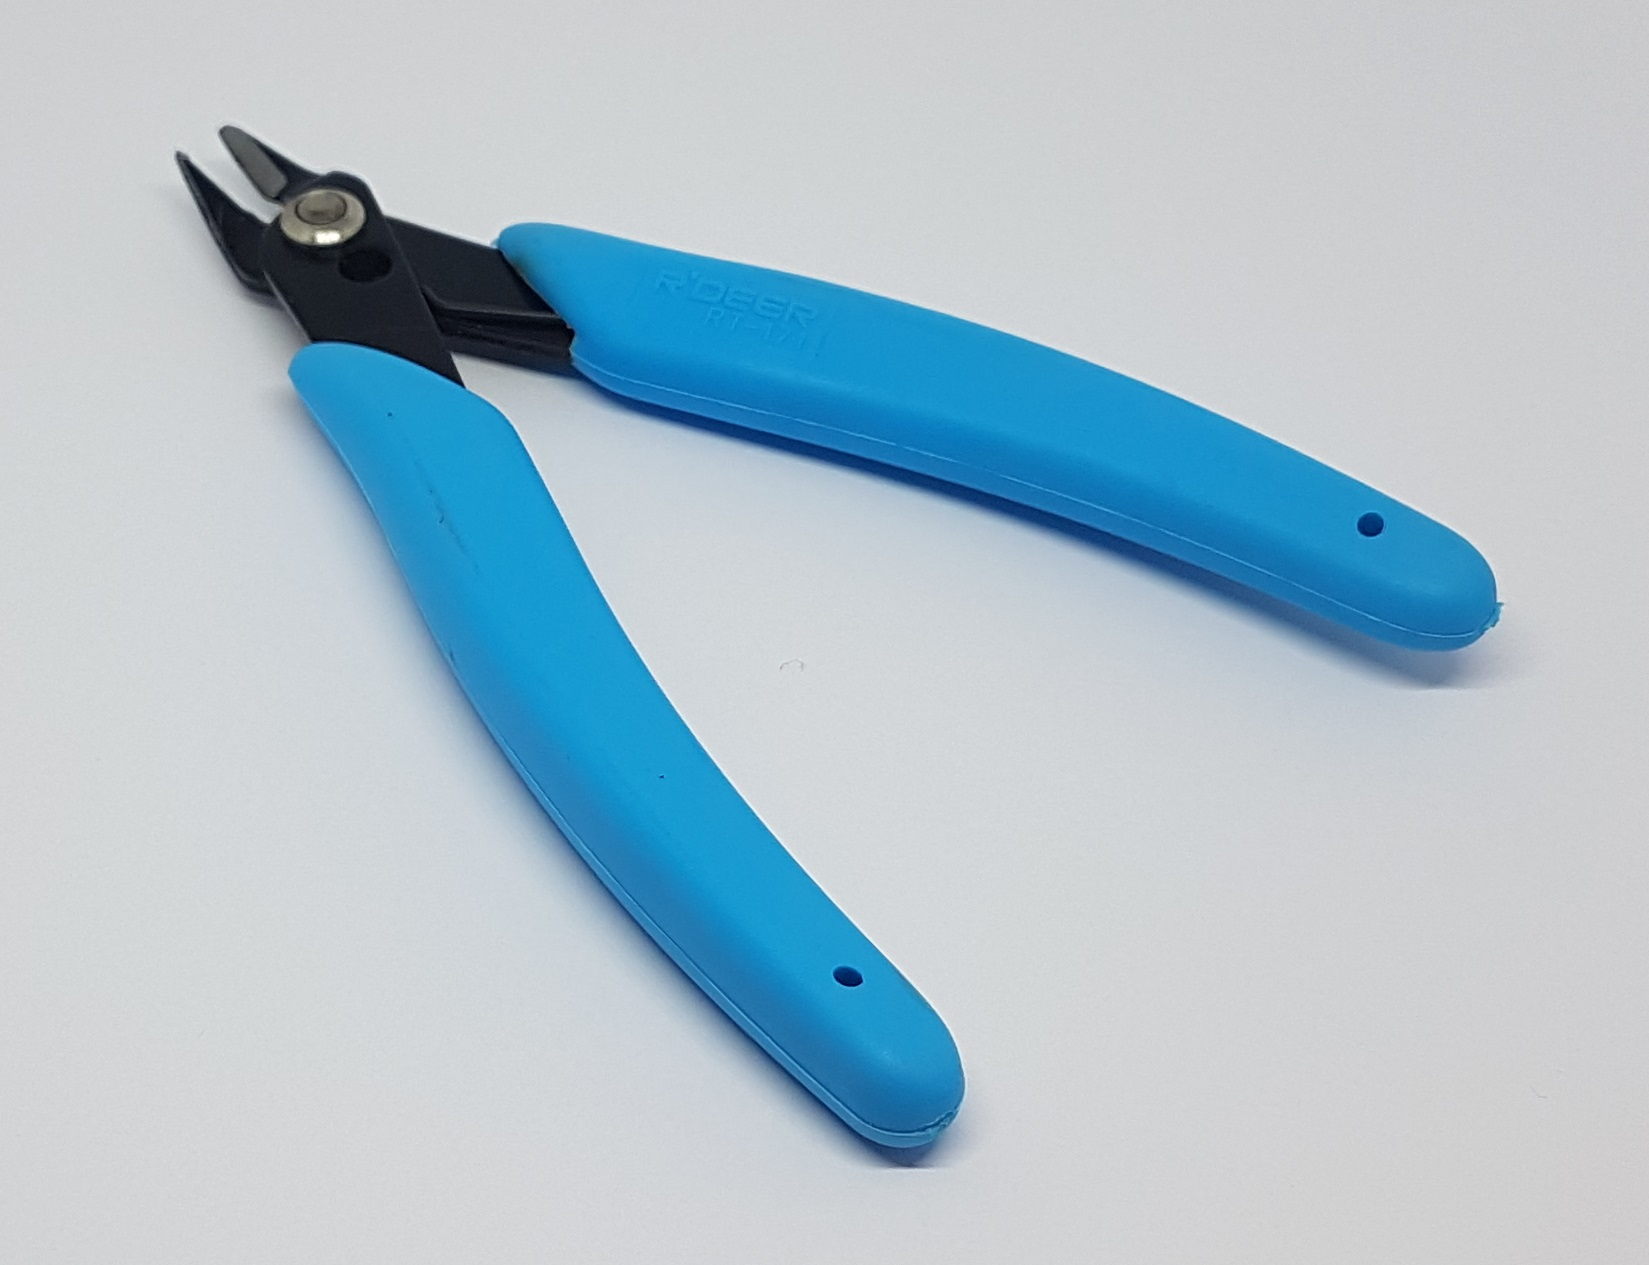 FX0075 - Micro-Shear Flush Cutter